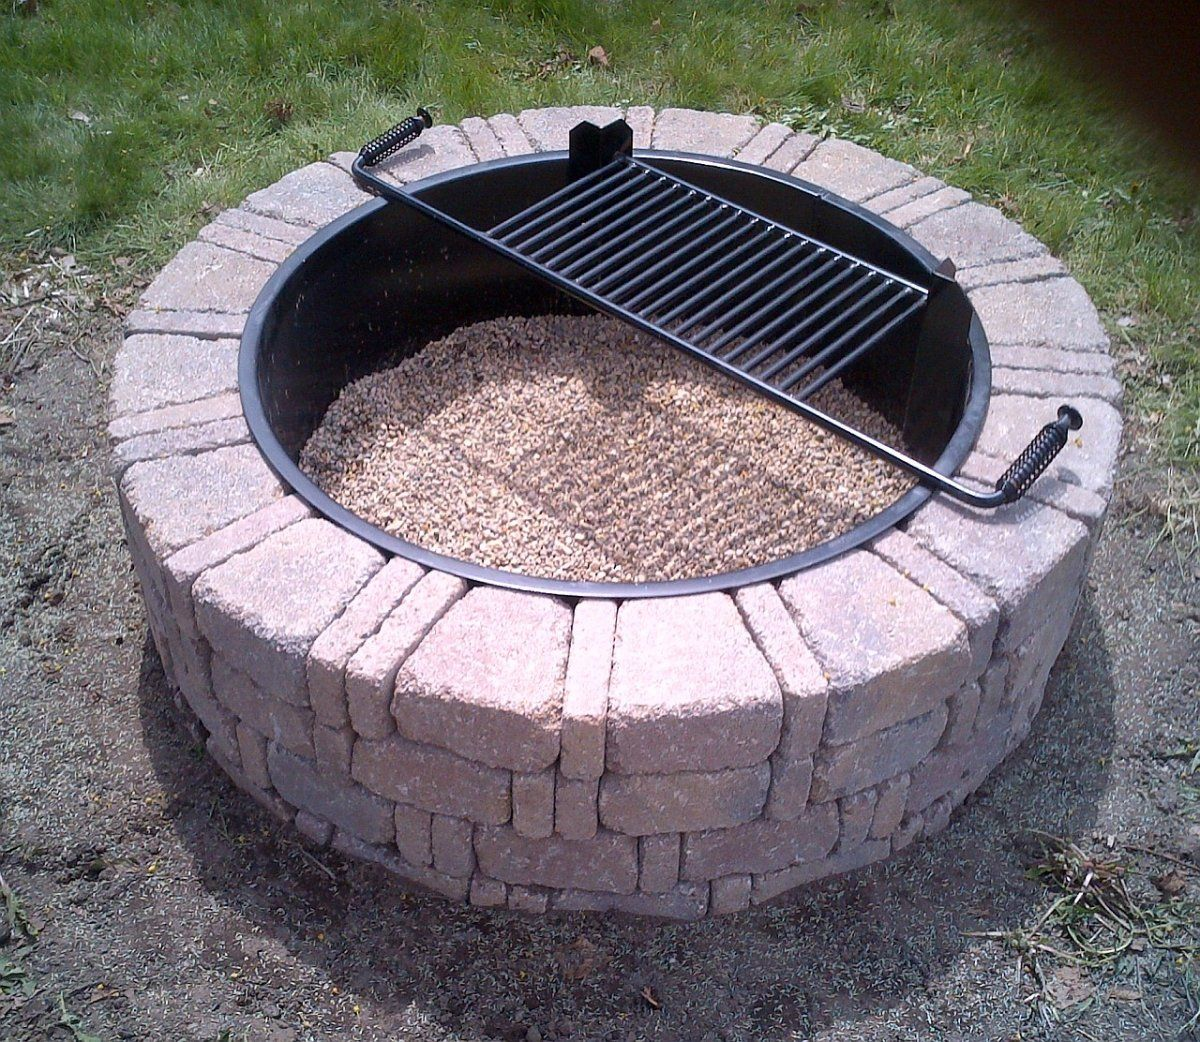 Steel Insert For Ring Fire Pit Fireplace Design Ideas Homemade Fire Pit Steel Fire Pit Ring Fire Pit Insert